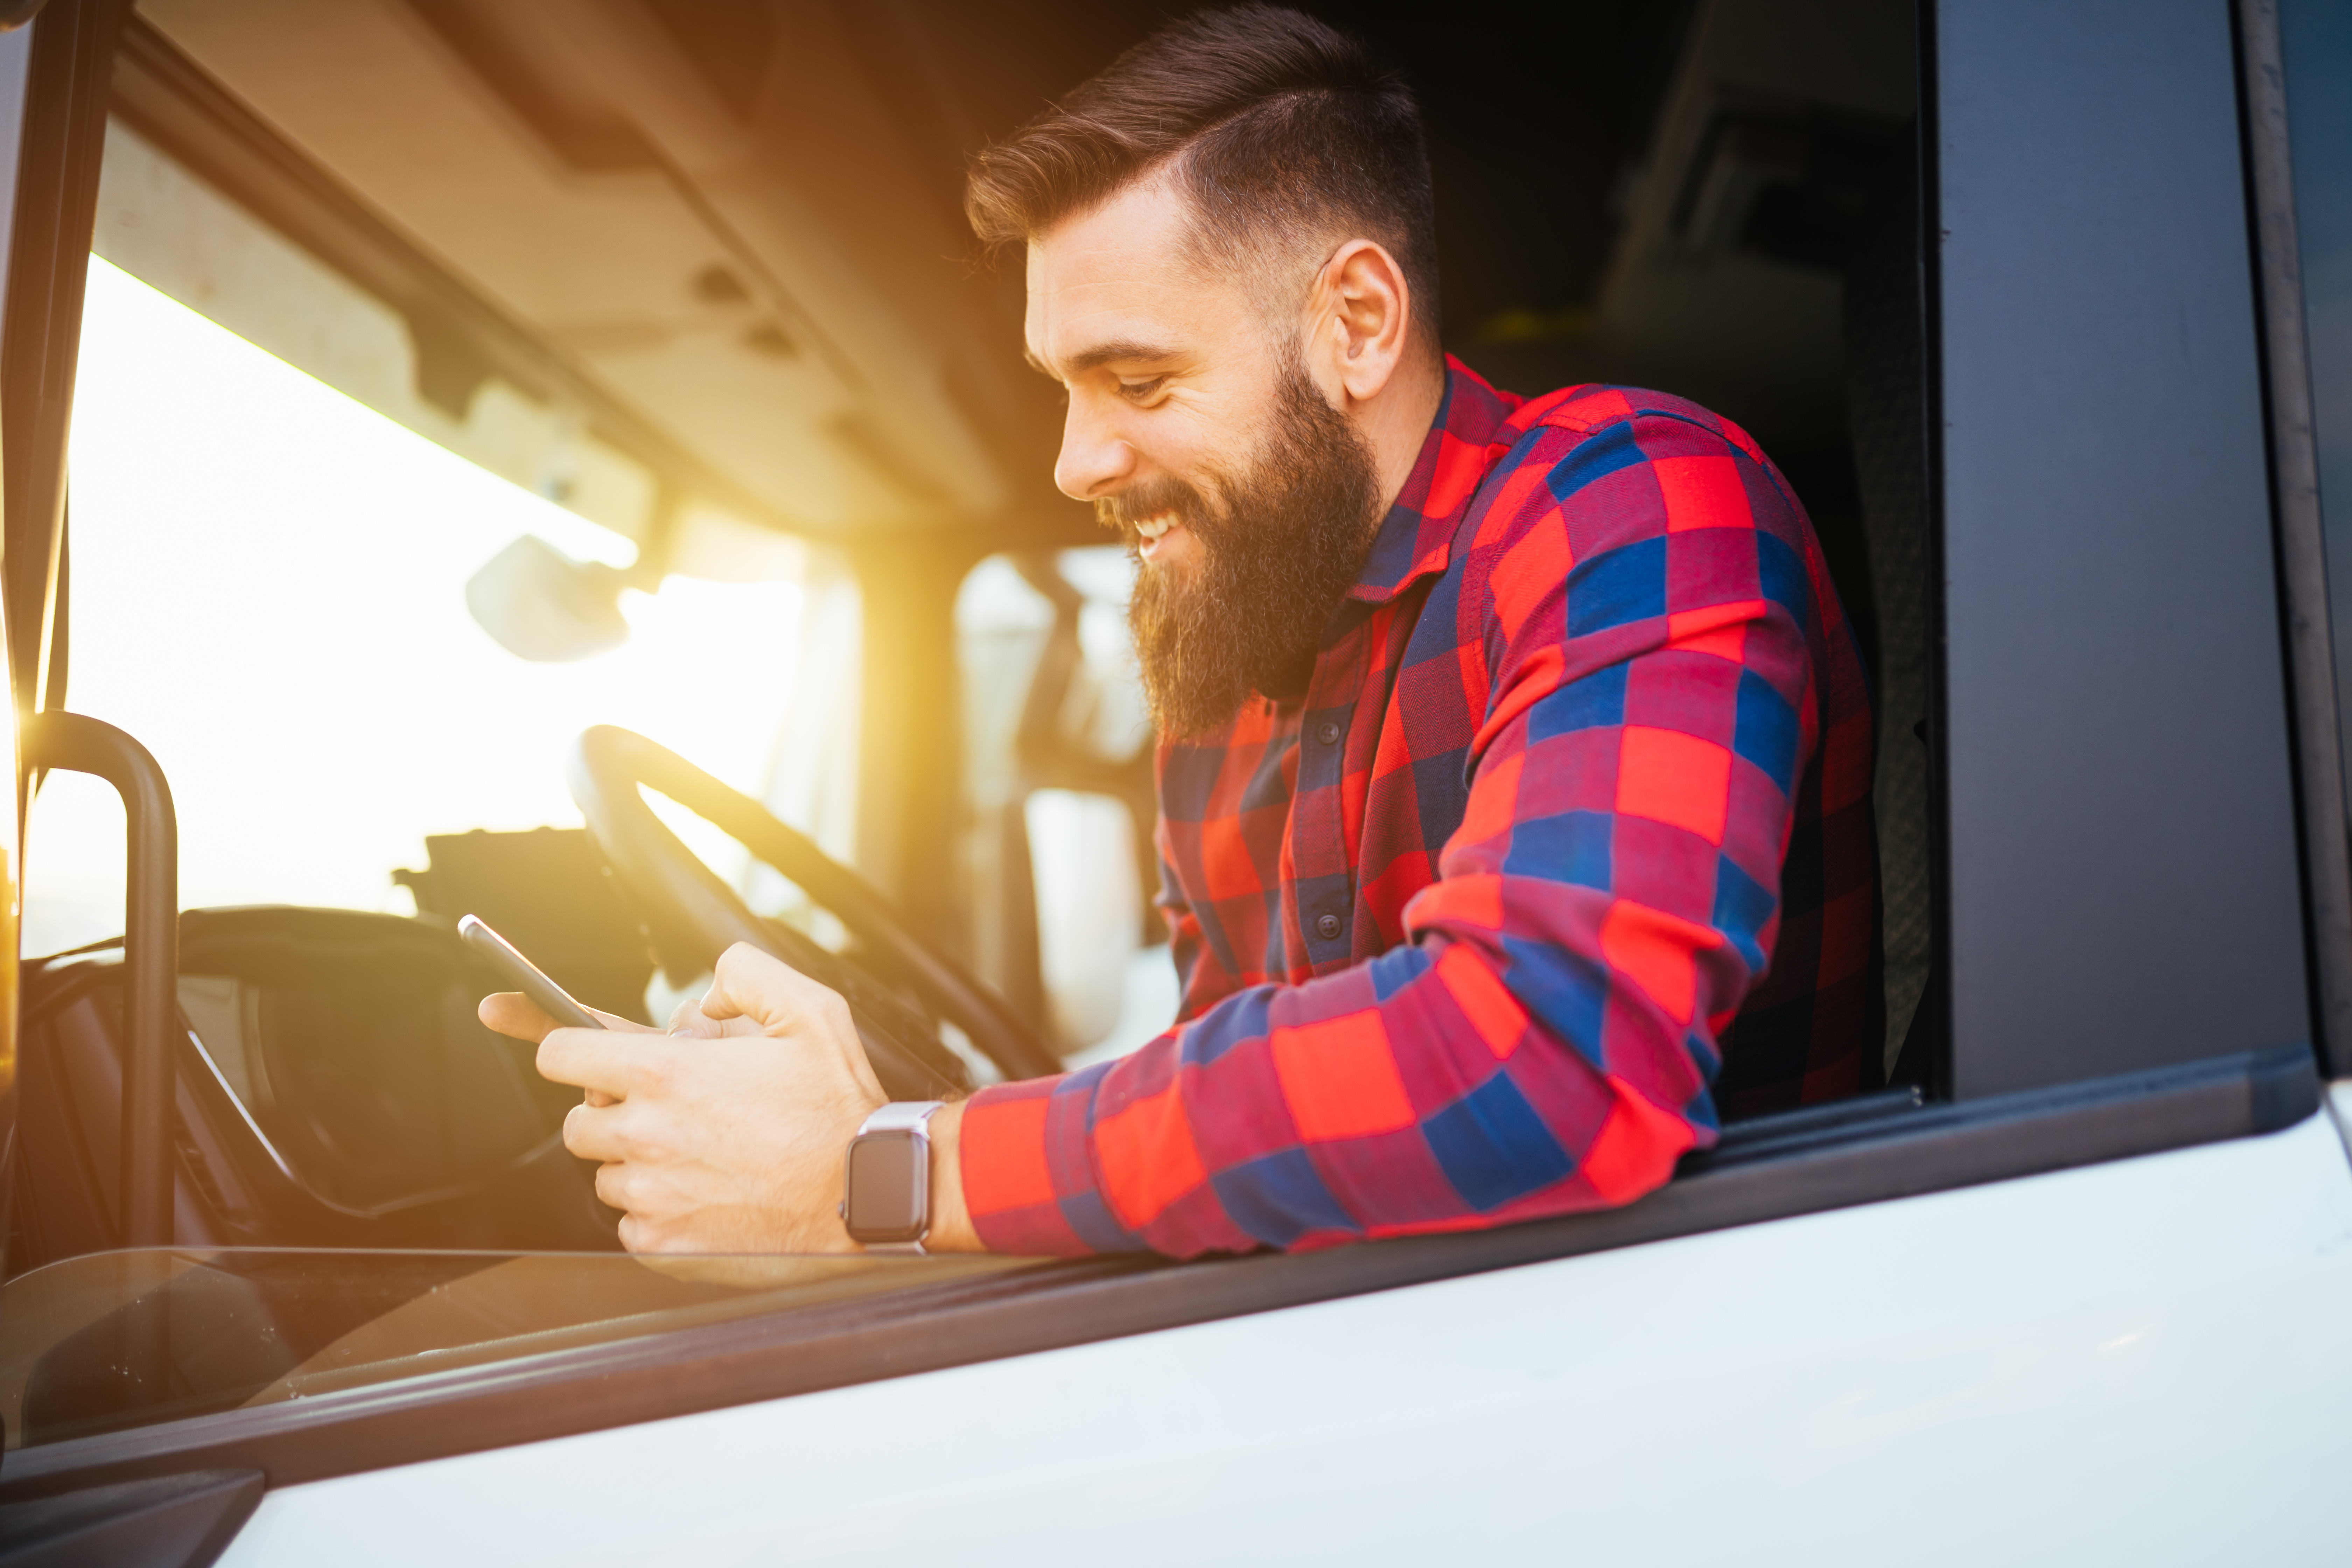 A man sitting at the driver seat of a truck smiles while looking at his smartphone screen.